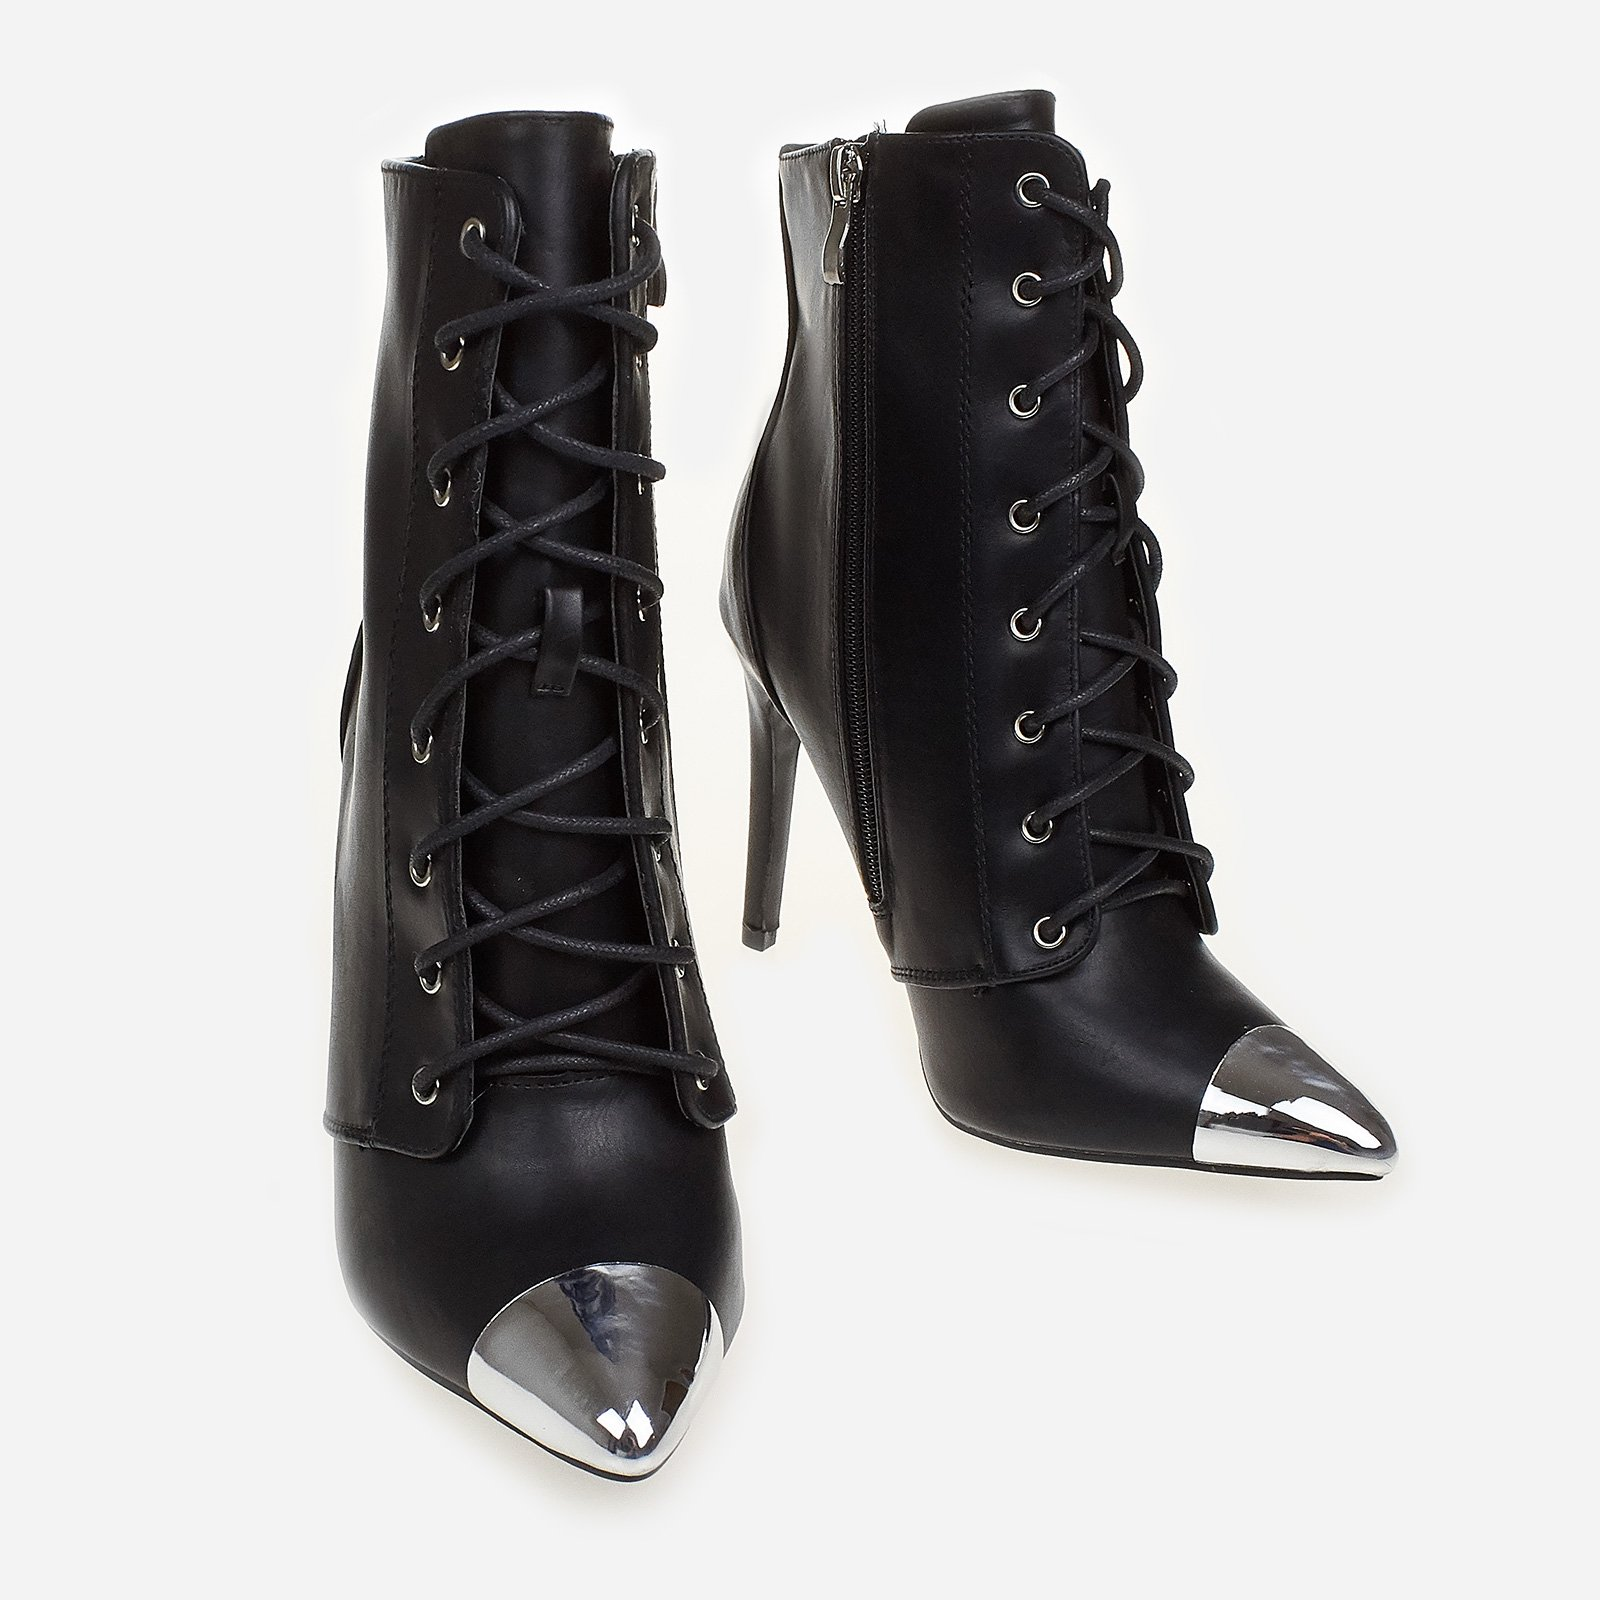 Cameron Lace Up Toe Cap Ankle Boot In Black Faux Leather